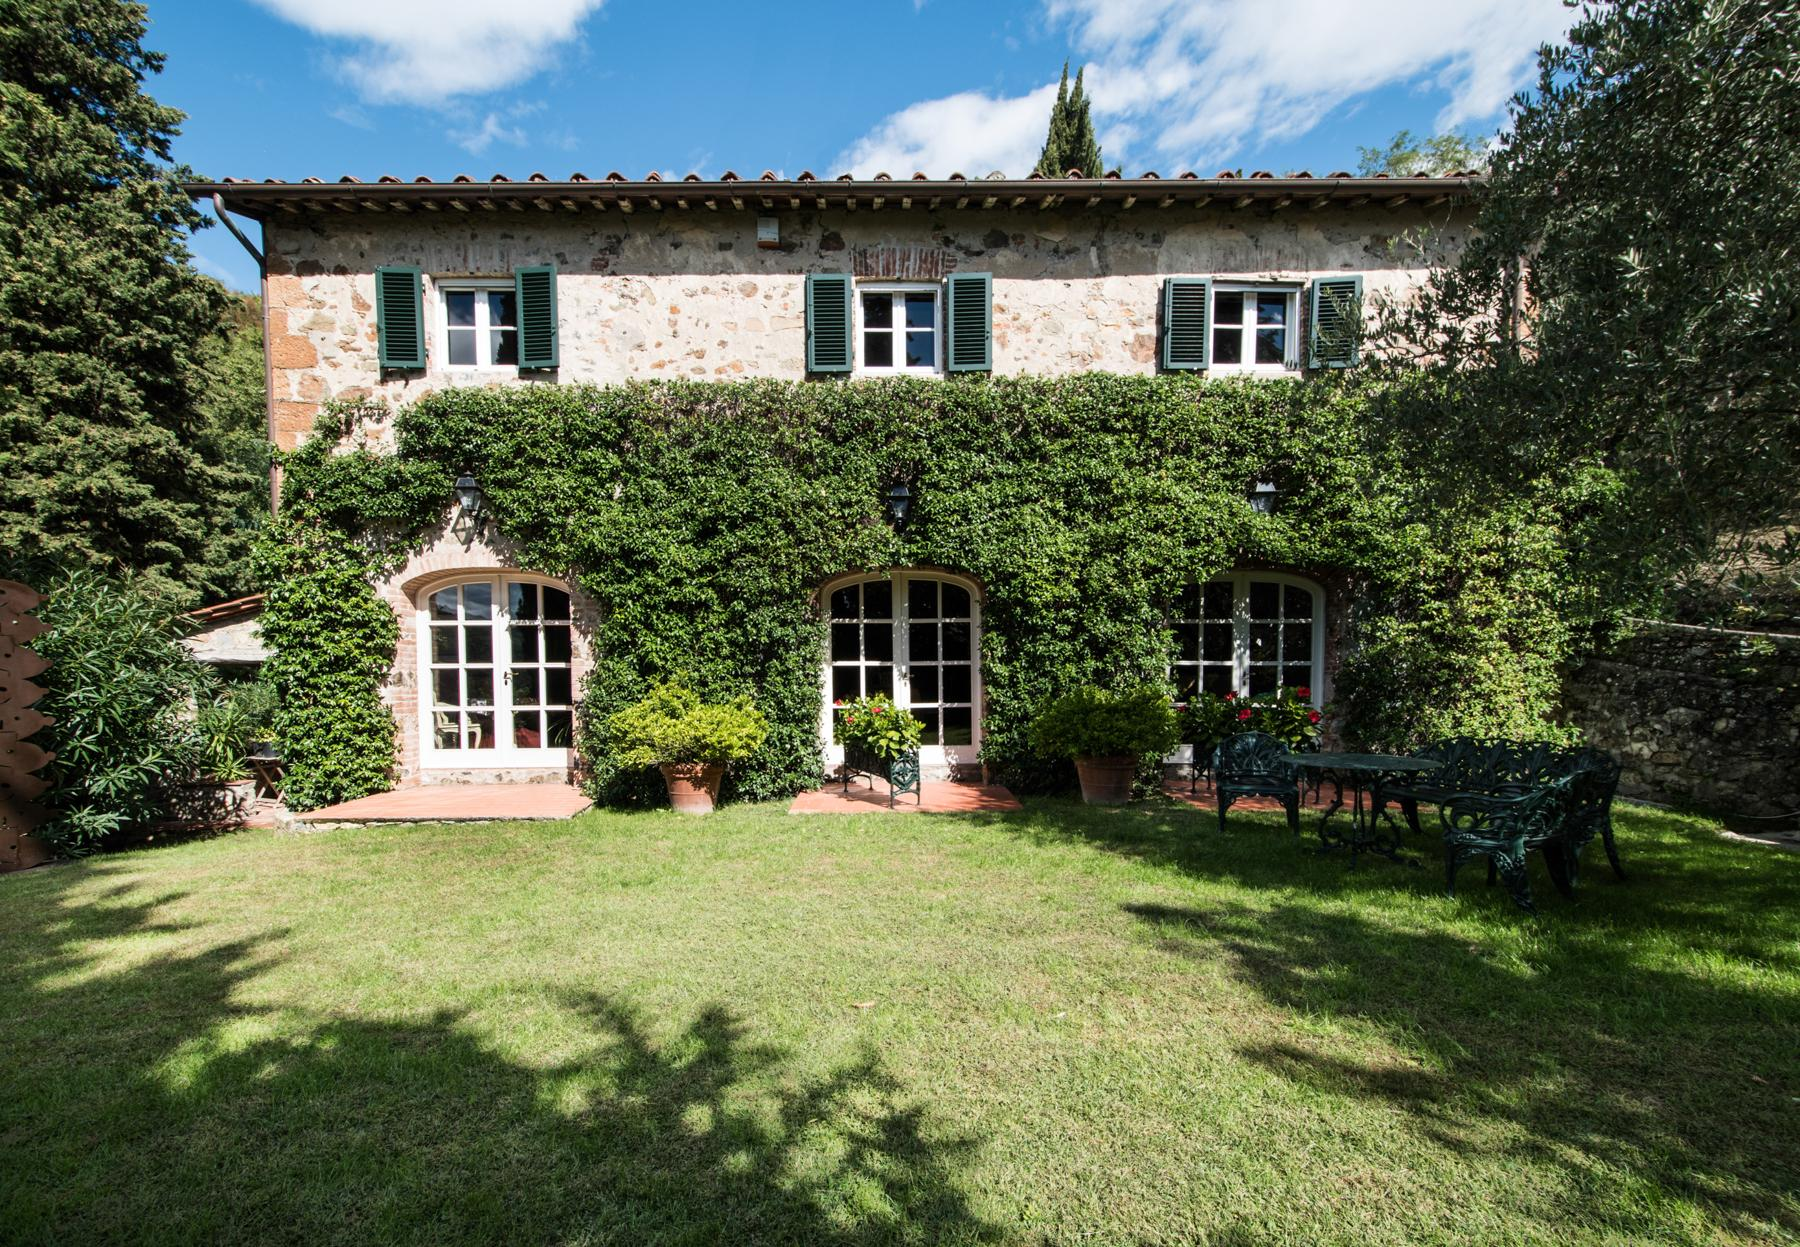 Marvelous villa in the countryside of Lucca - 33